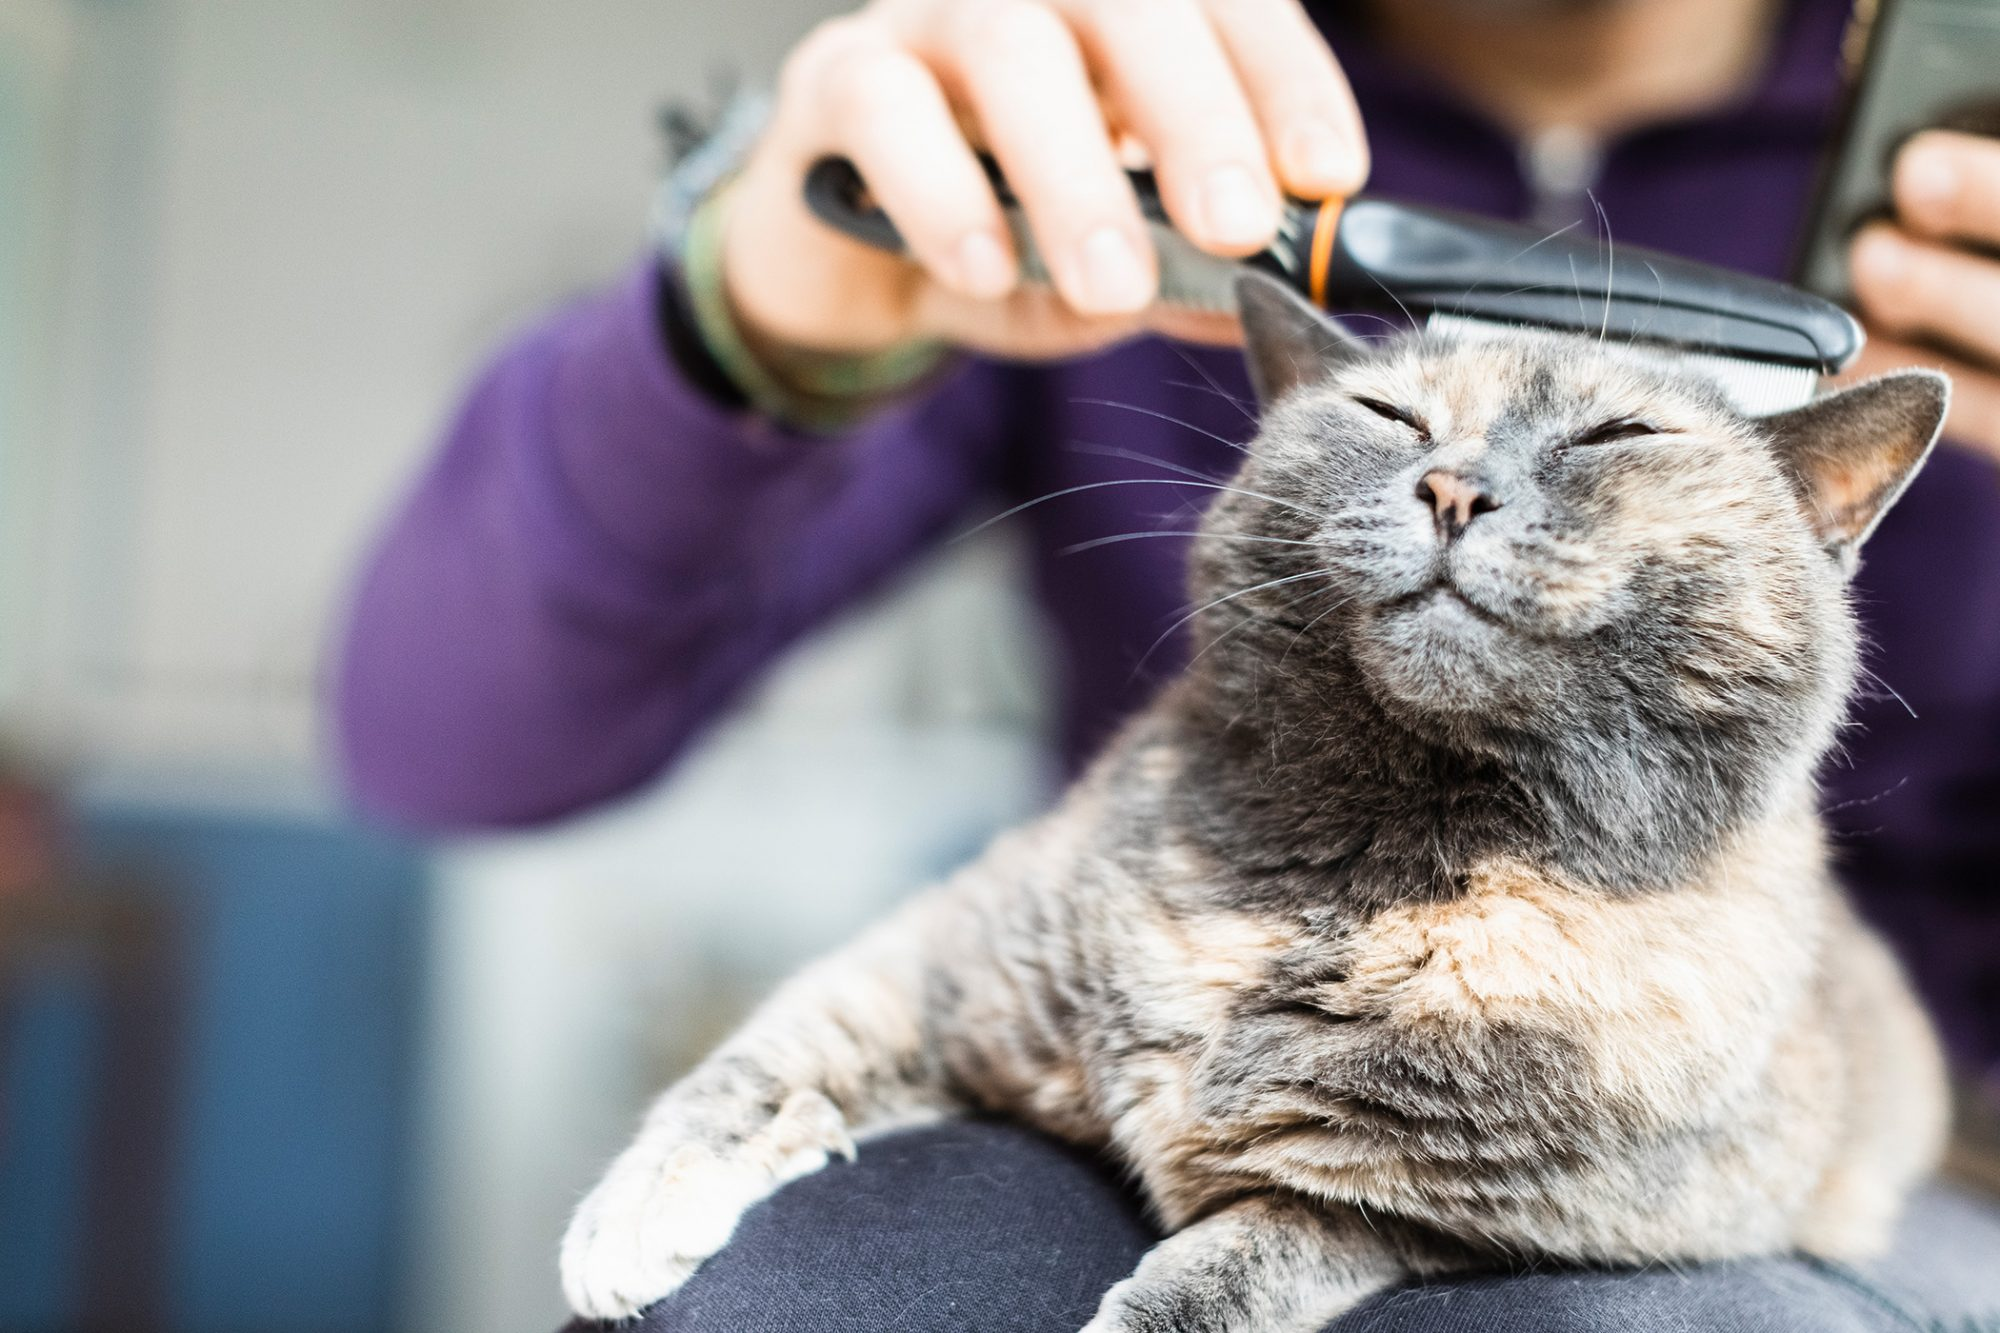 man brushing catdeimagine / Getty